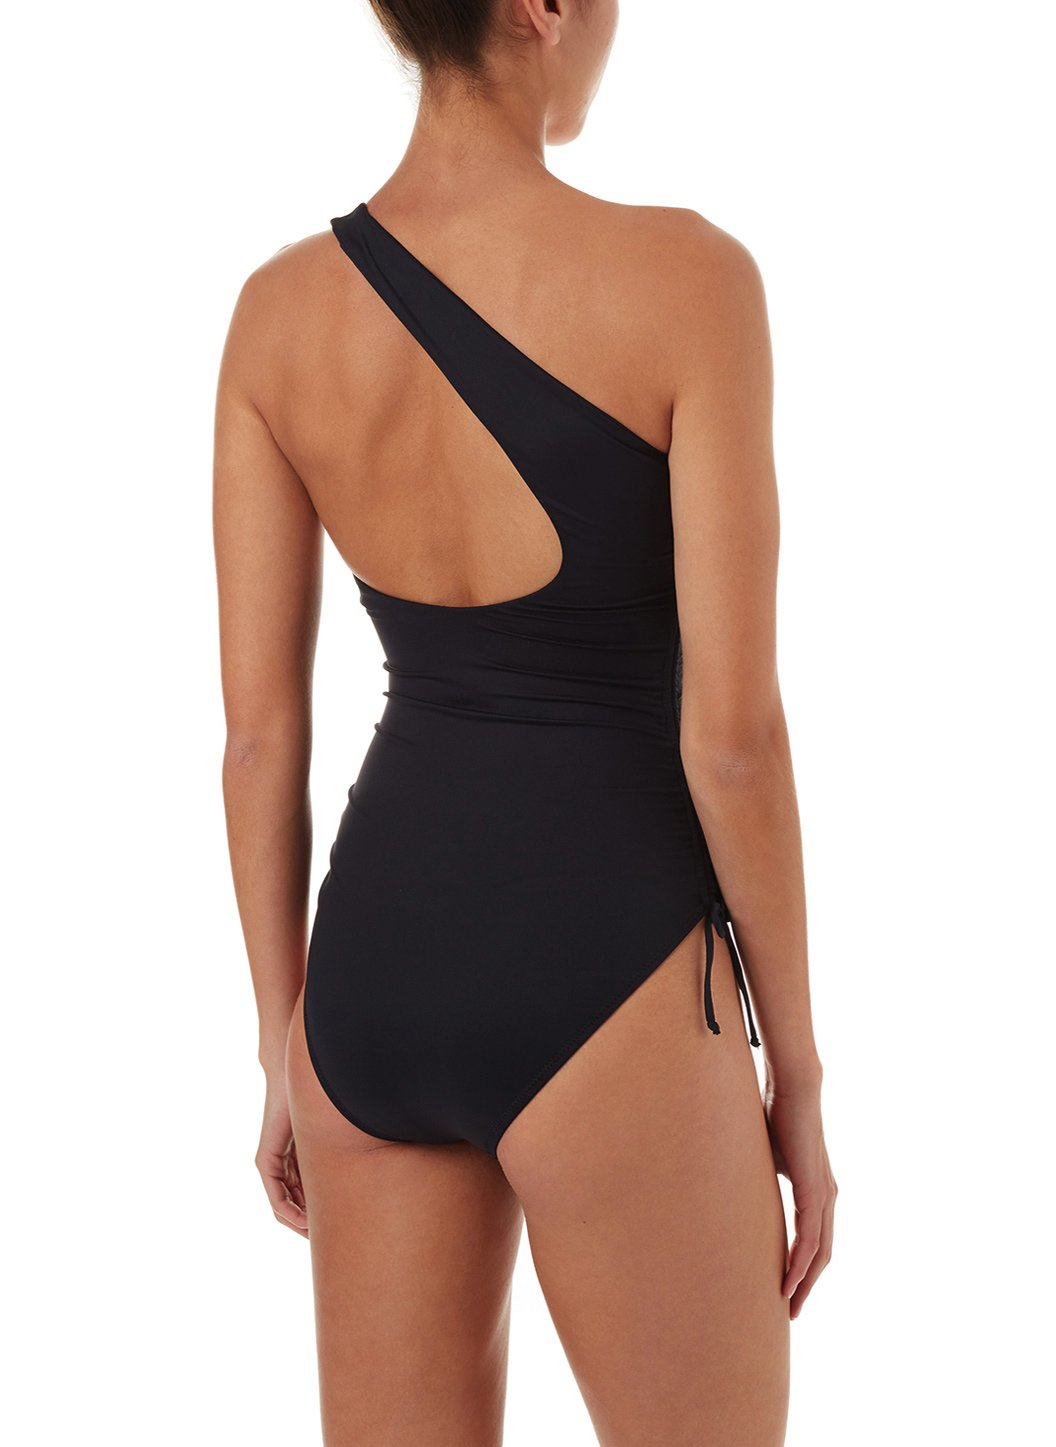 polynesia black oneshoulder ruched onepiece swimsuit 2019 B